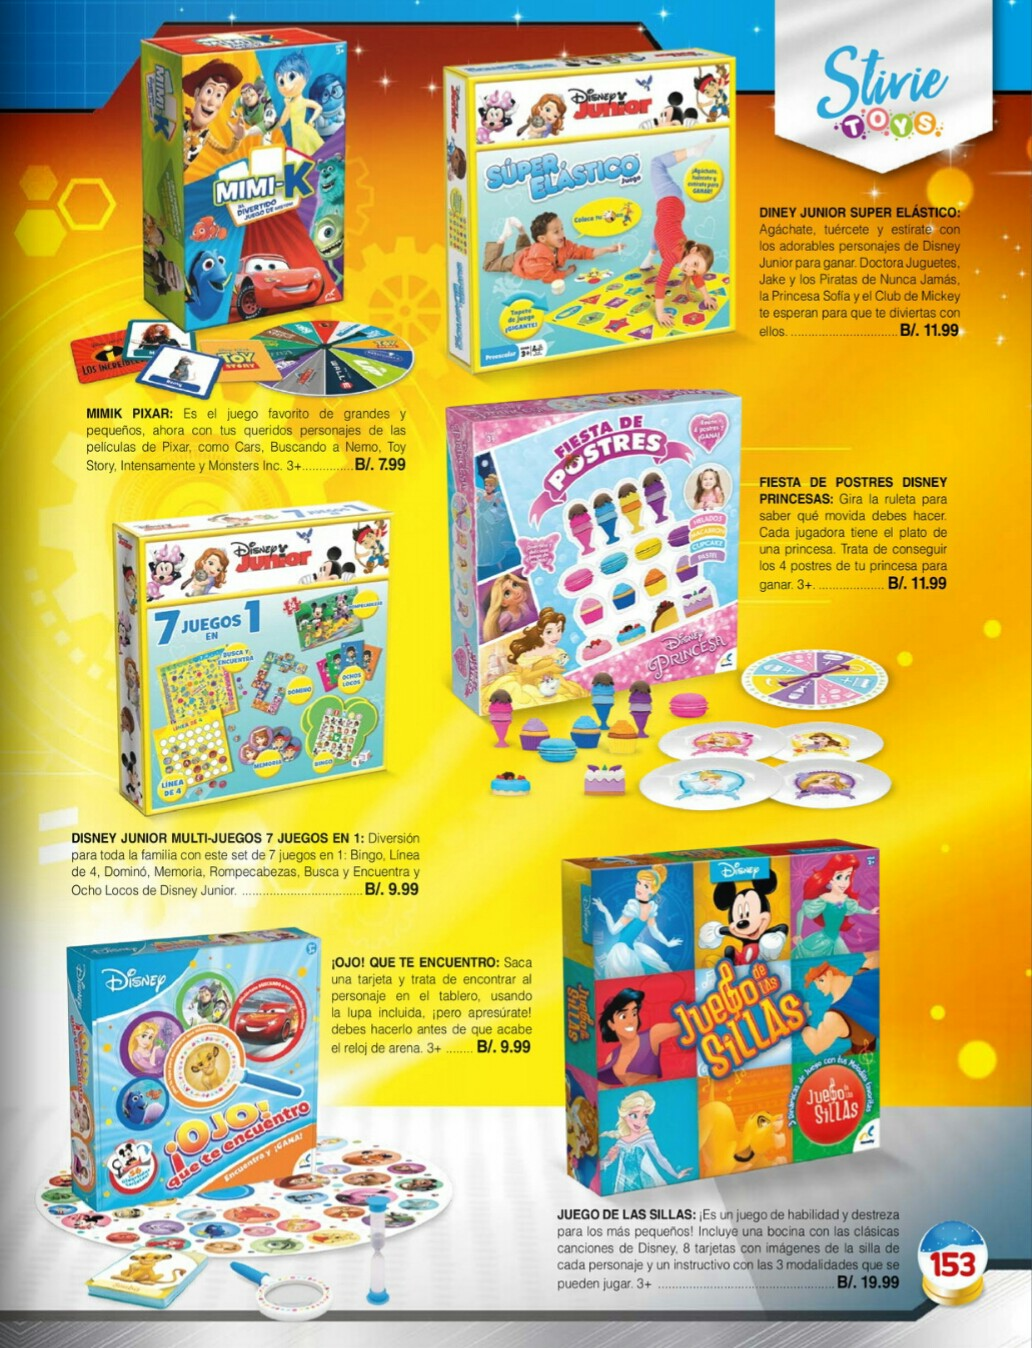 Catalogo juguetes Stivie toys 2018 p153